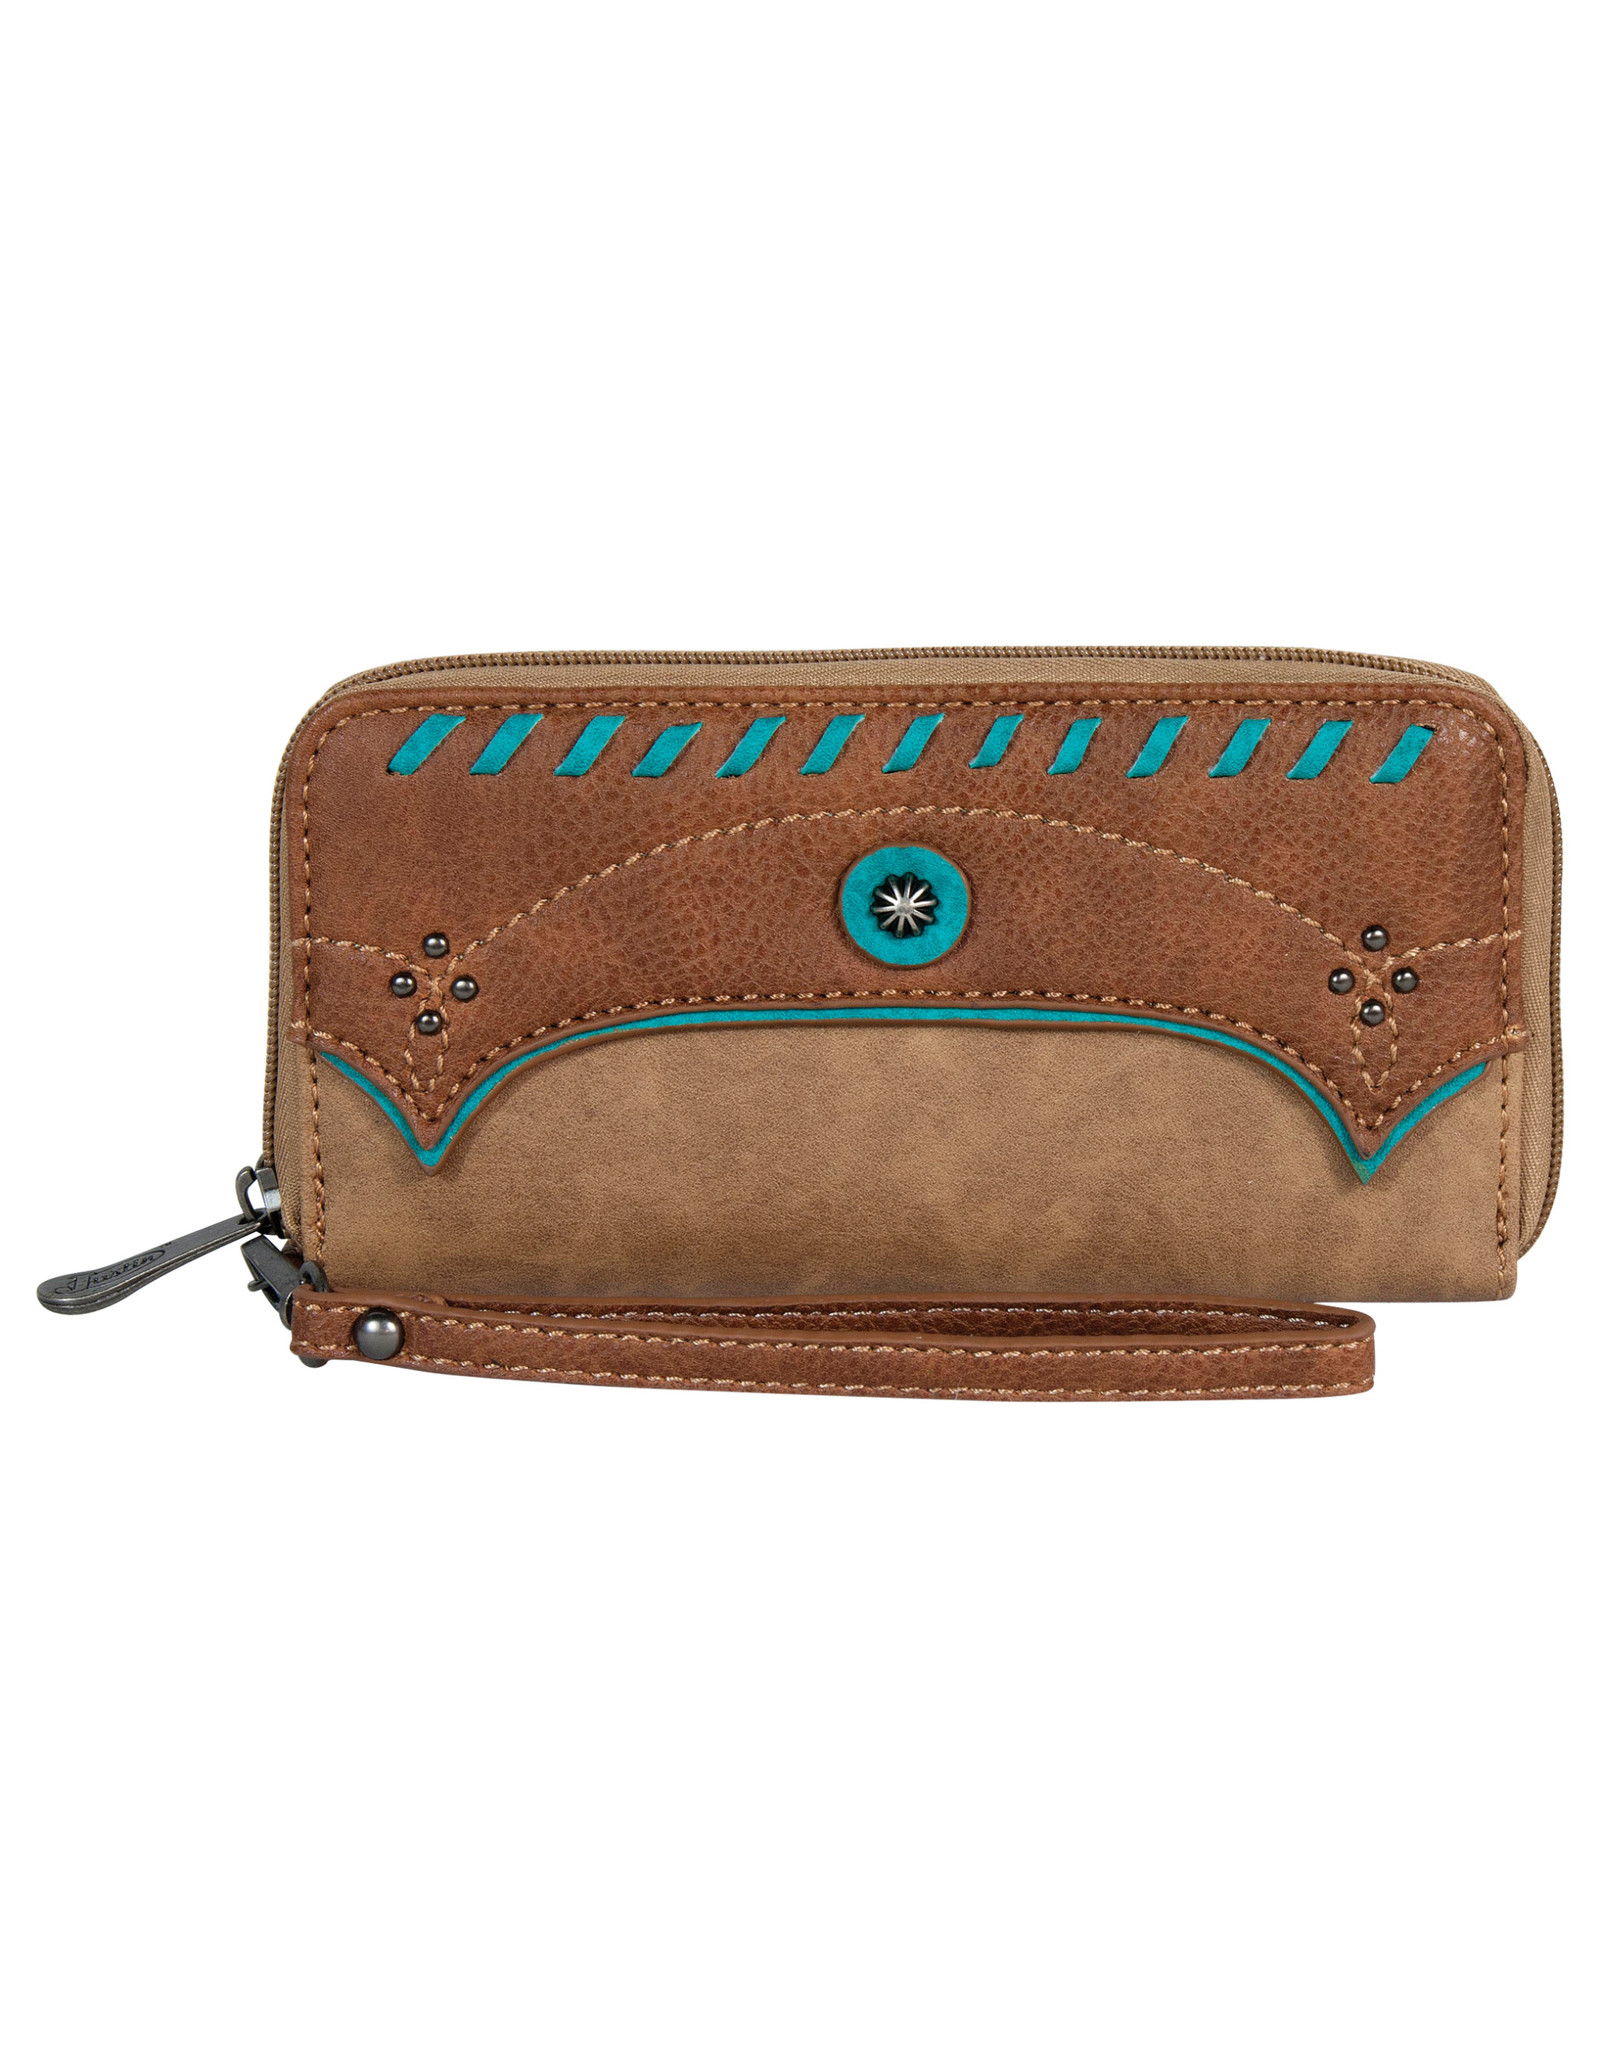 Justin 2057553W Justin Wallet - Open Faced Fawn with Turquoise